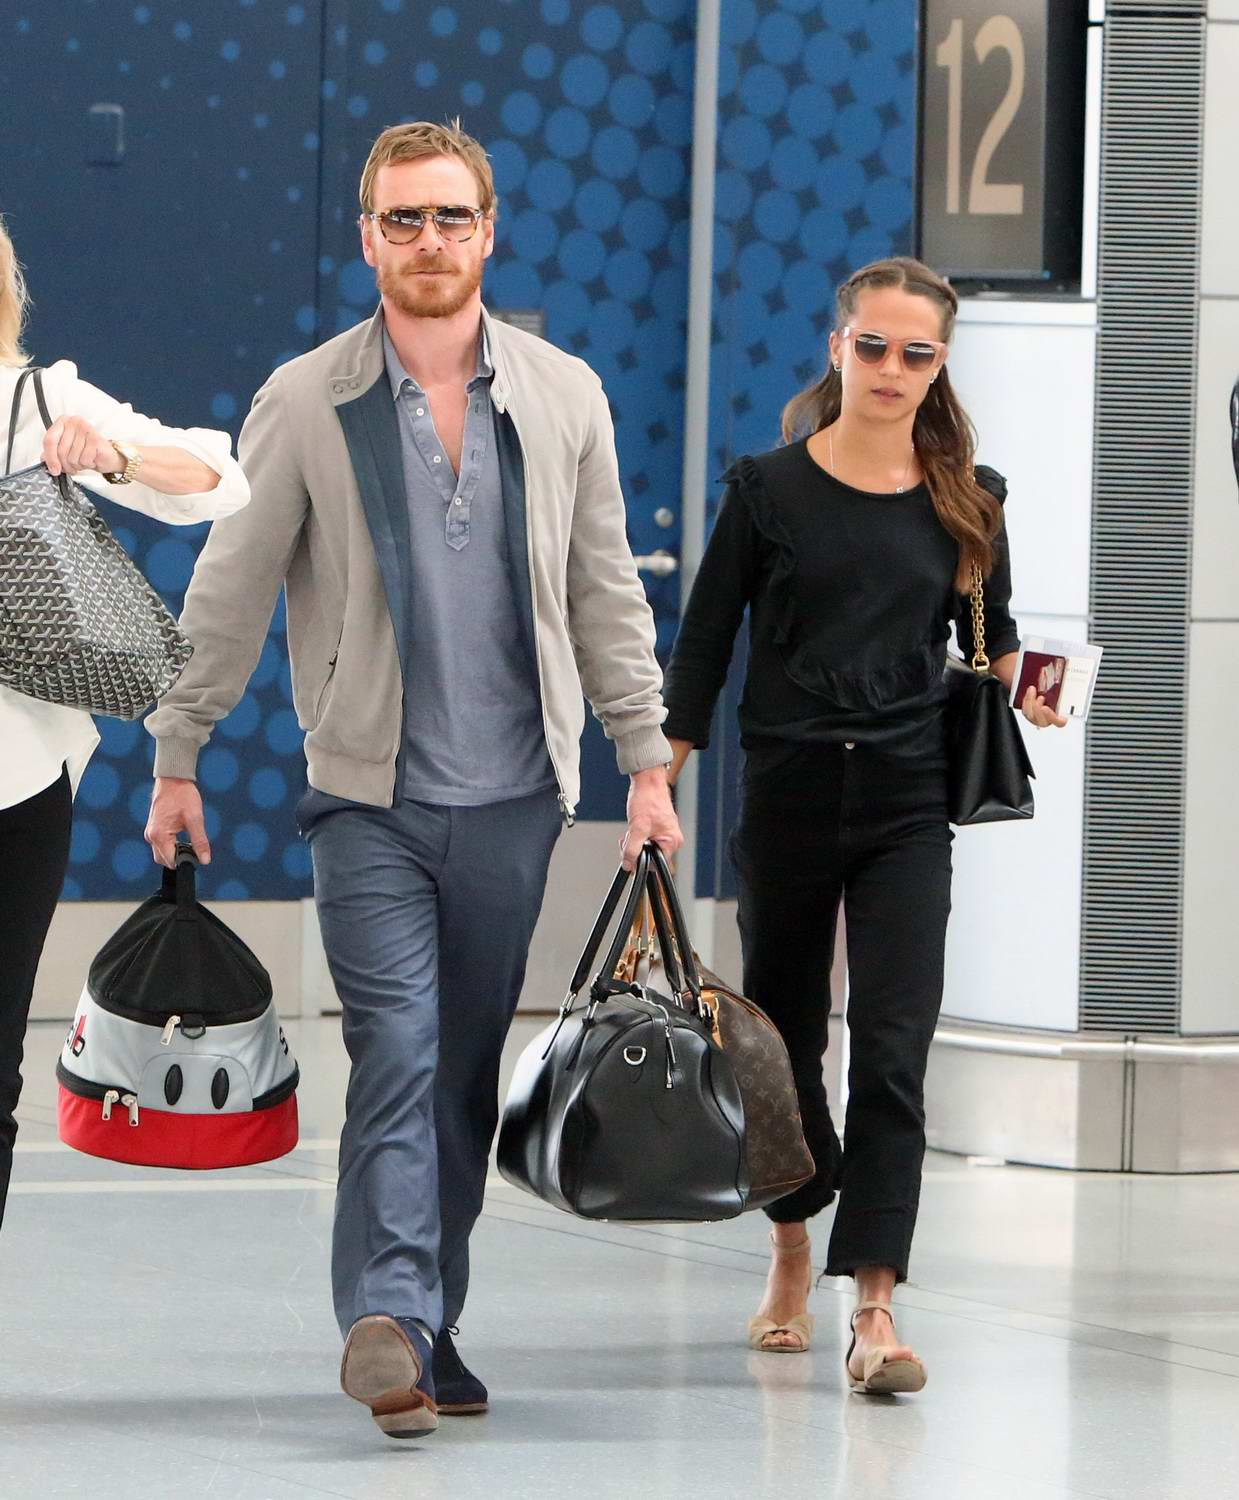 Alicia Vikander and Michael Fassbender departing from Toronto Pearson International Airport in Toronto, Canada